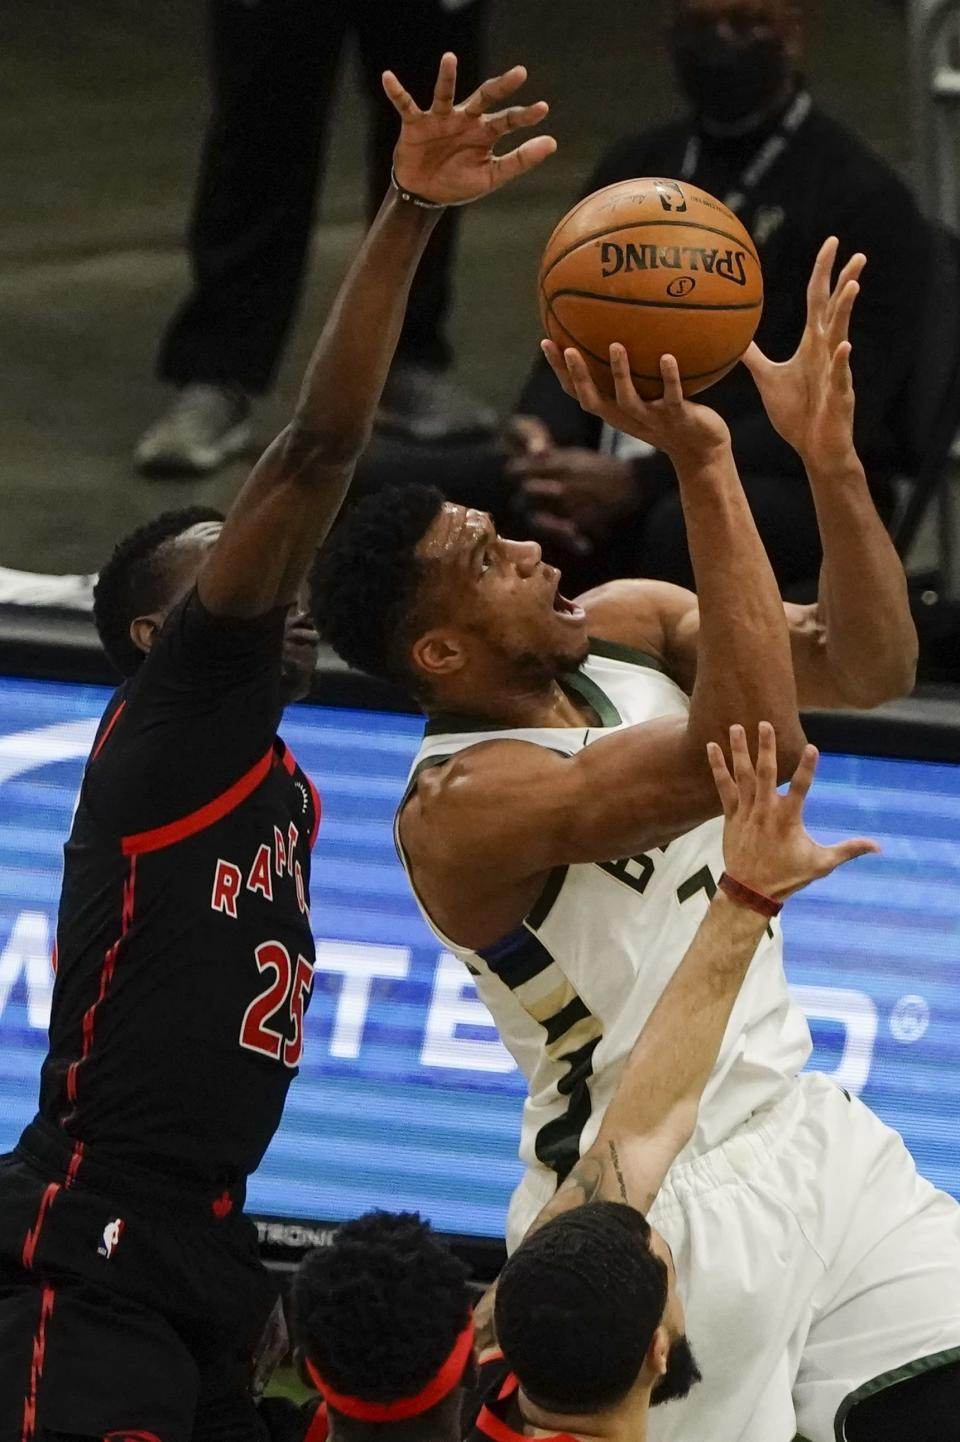 Milwaukee Bucks' Giannis Antetokounmpo shoots past Toronto Raptors' Chris Boucher during the first half of an NBA basketball game Tuesday, Feb. 16, 2021, in Milwaukee. (AP Photo/Morry Gash)